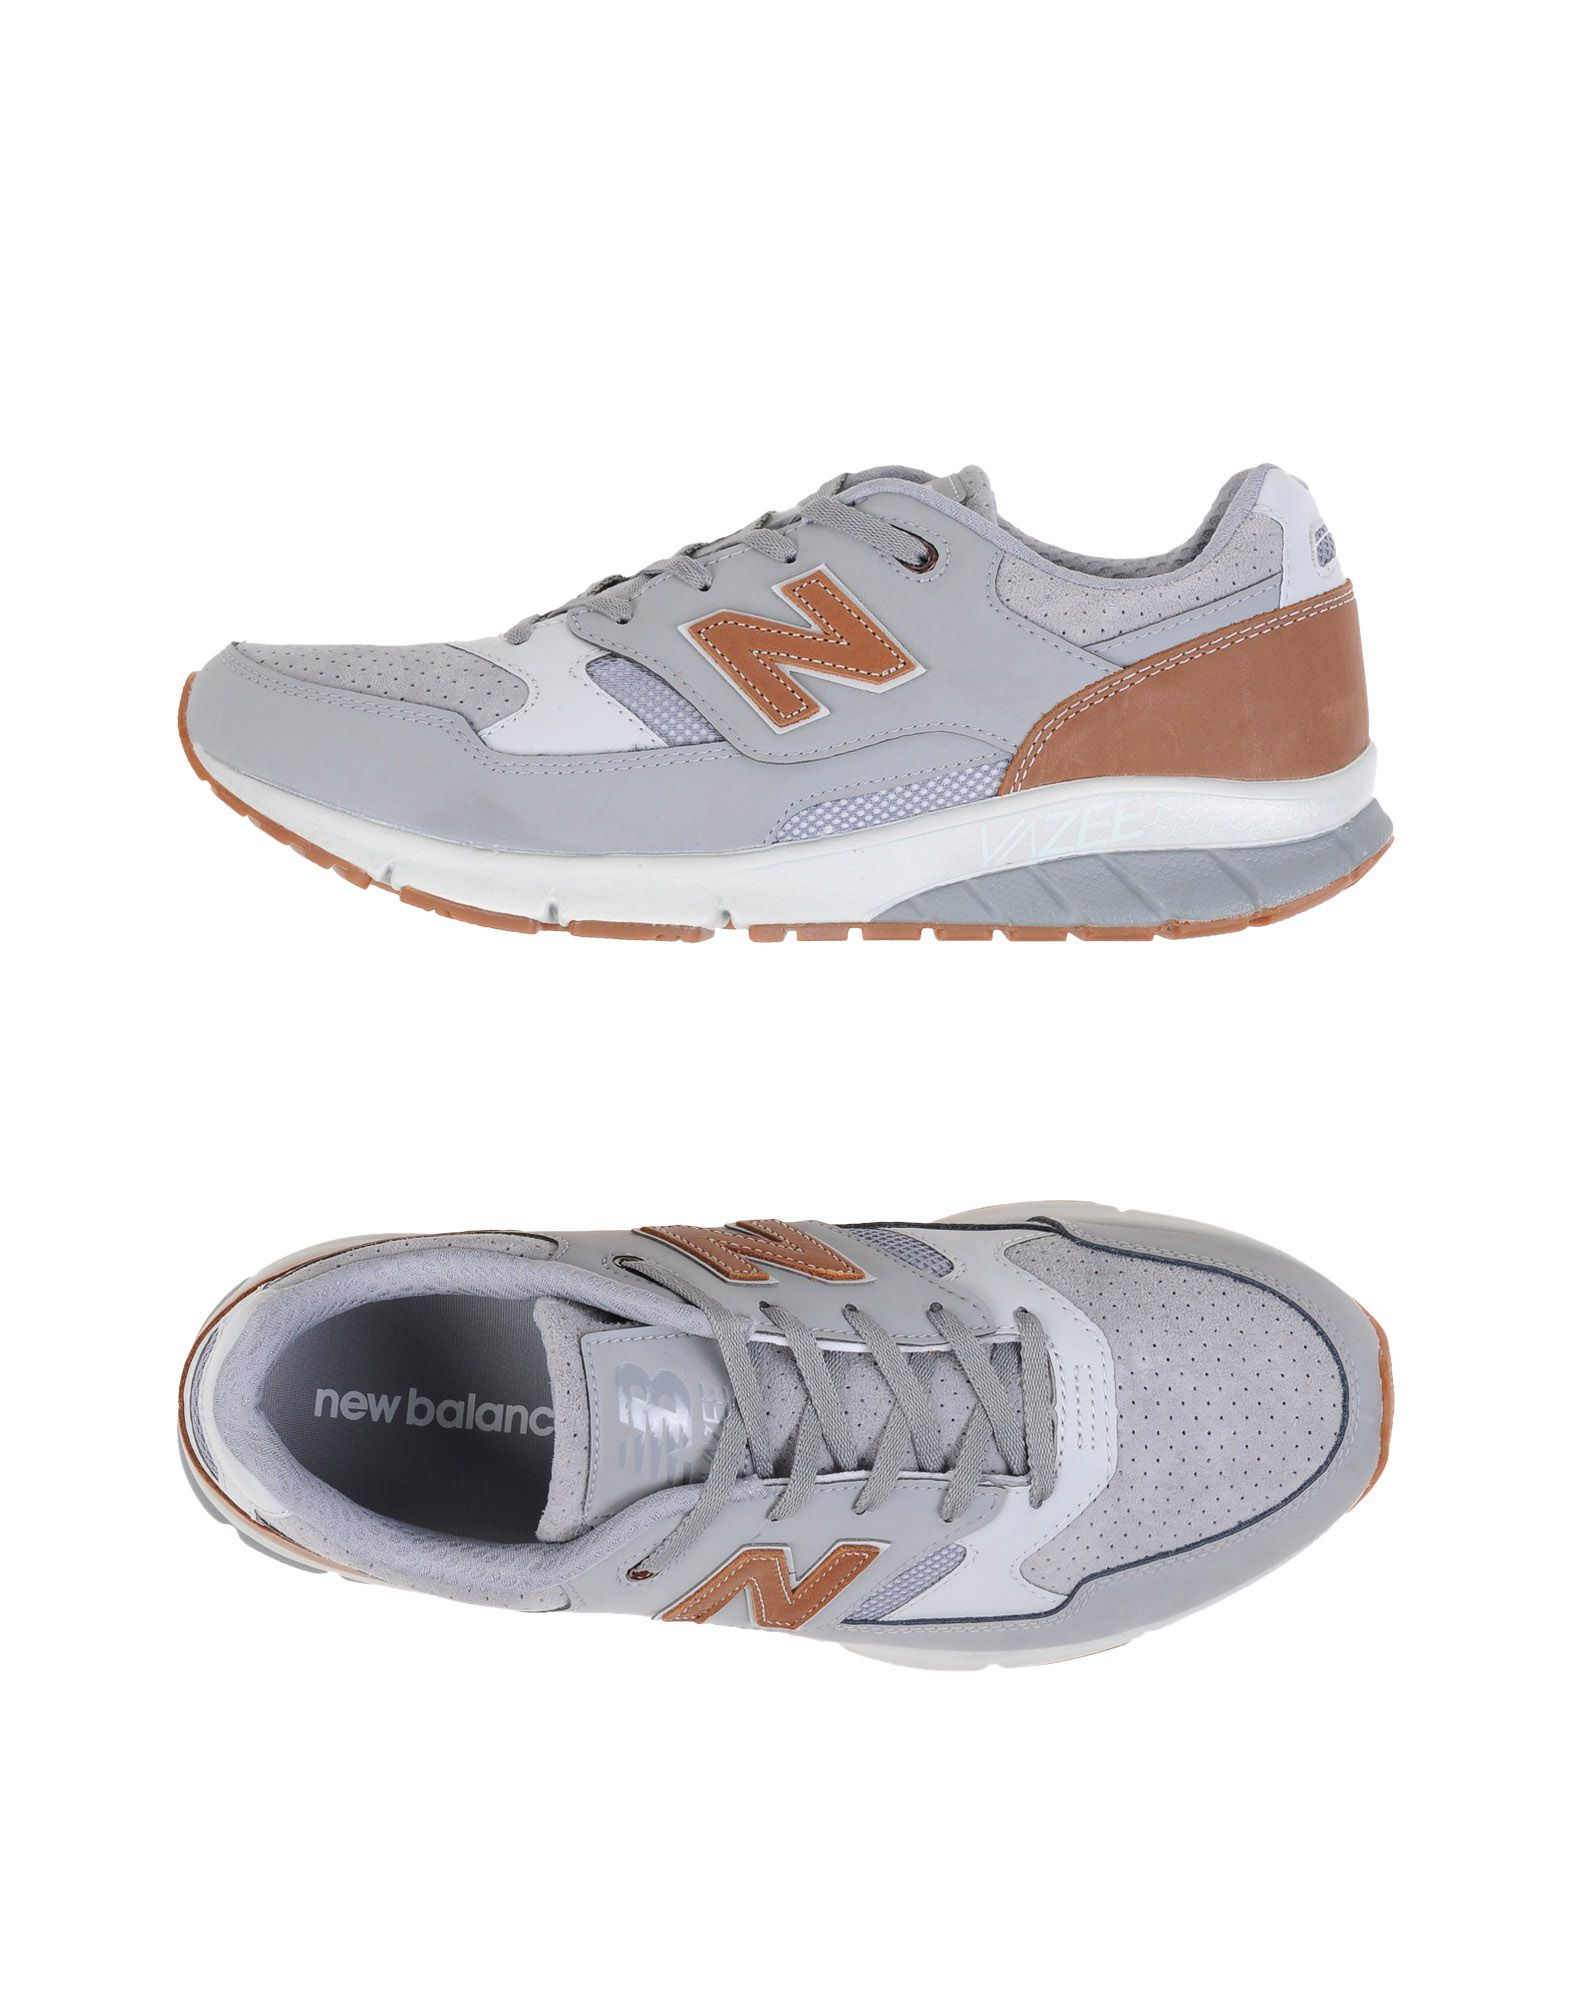 Sneakers New Balance 530 Vazee Luxury Leather - Homme - Sneakers New Balance sur